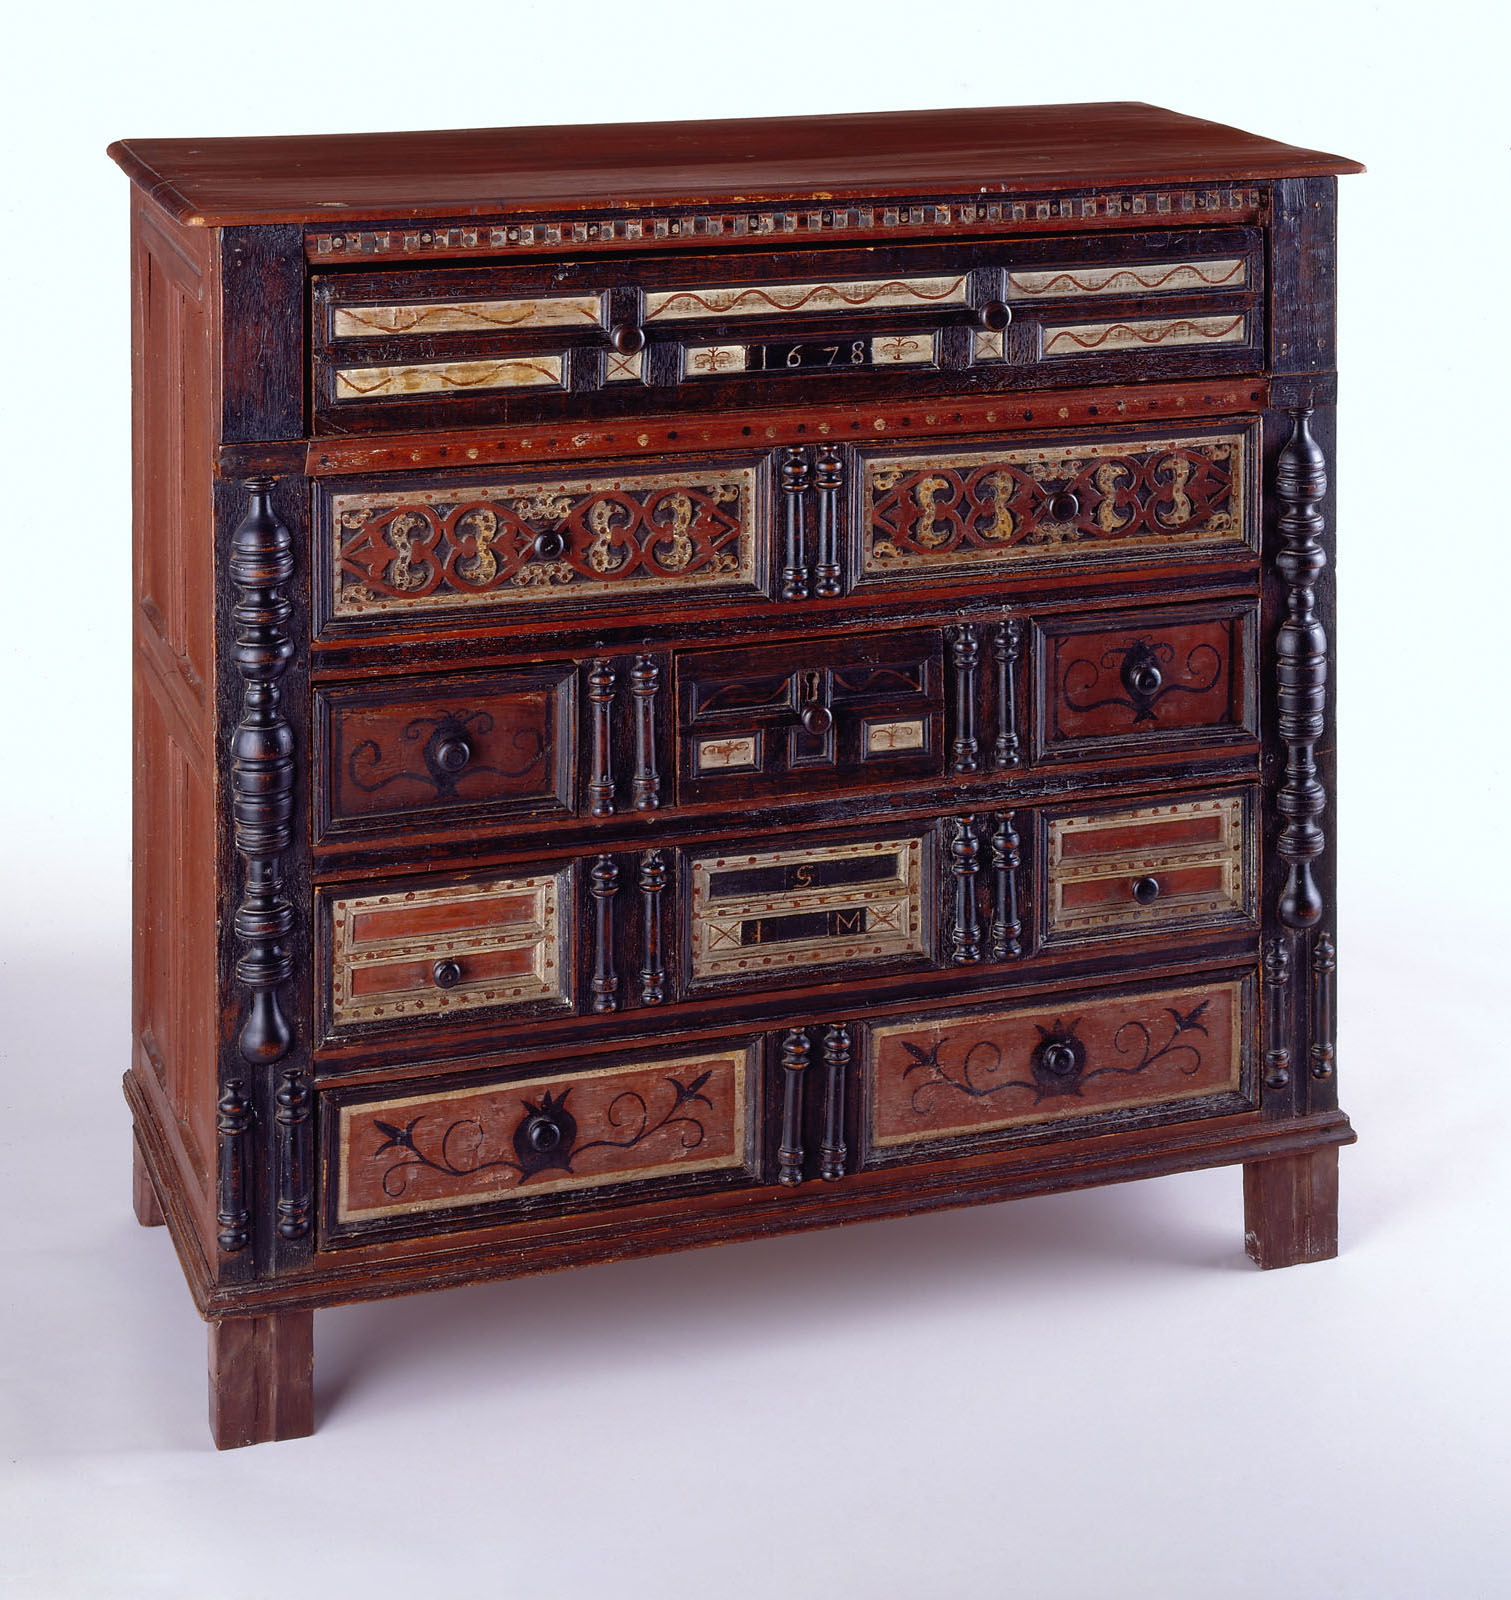 Furniture - Chest of drawers